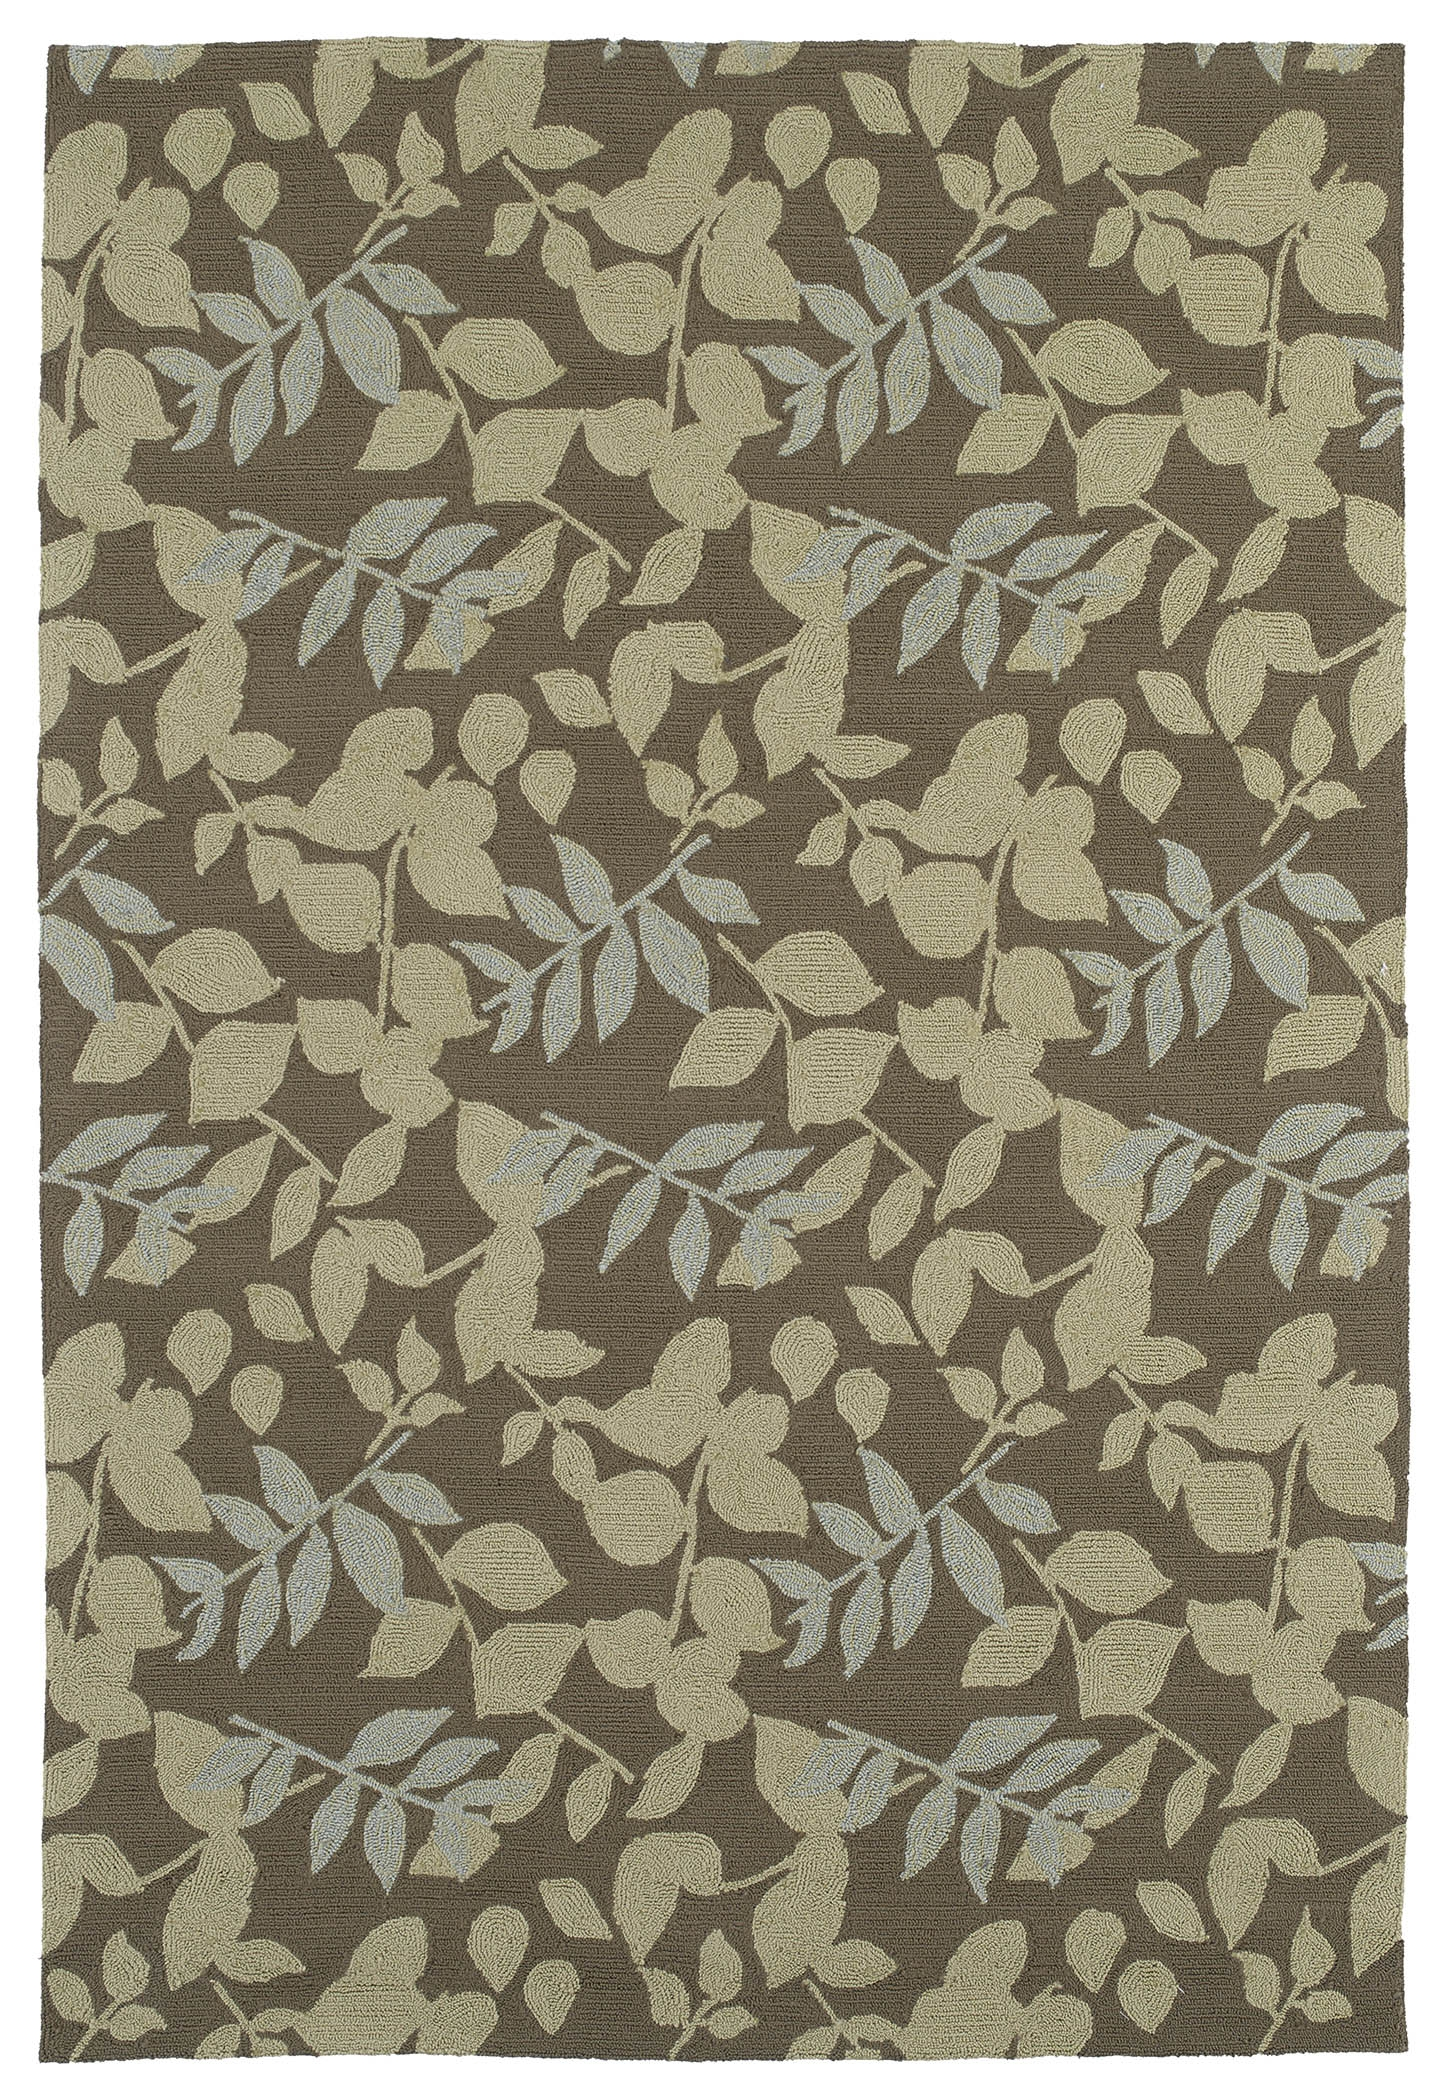 Home & Porch Wimberly 2001 51 Coffee Outdoor Rug by Kaleen